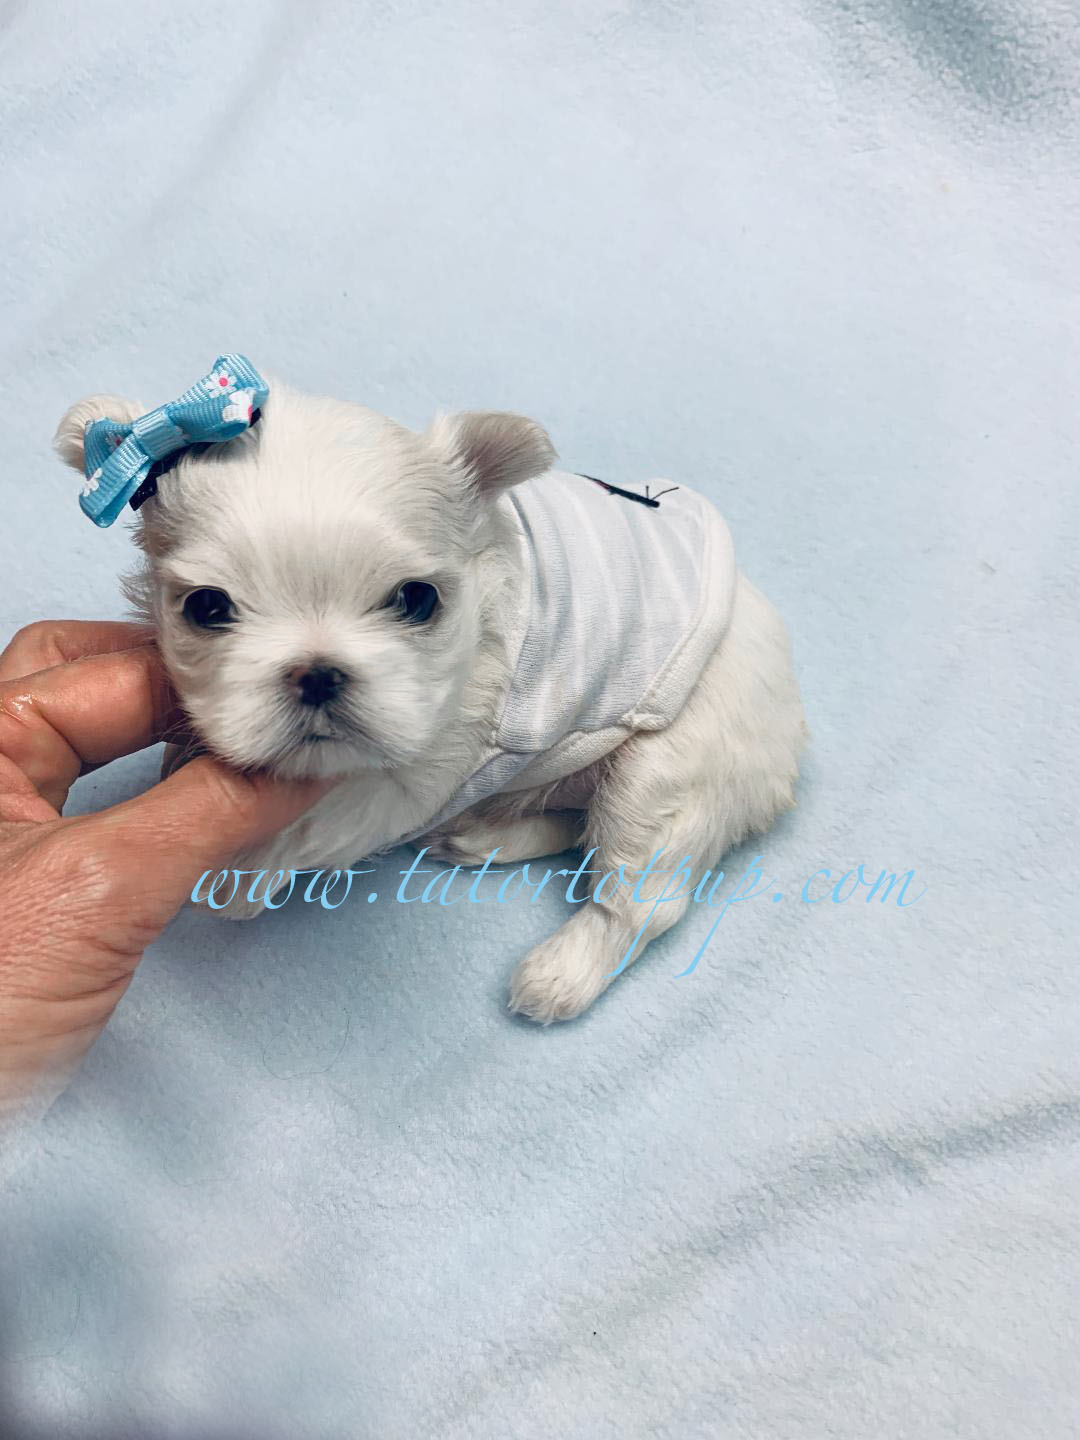 Ahhhh mazing Tiny CKC Registered with Pedigree behind him - Prince Vladimir Maltese Babydoll Ready for Reservation Deposit $3800 plus delivery